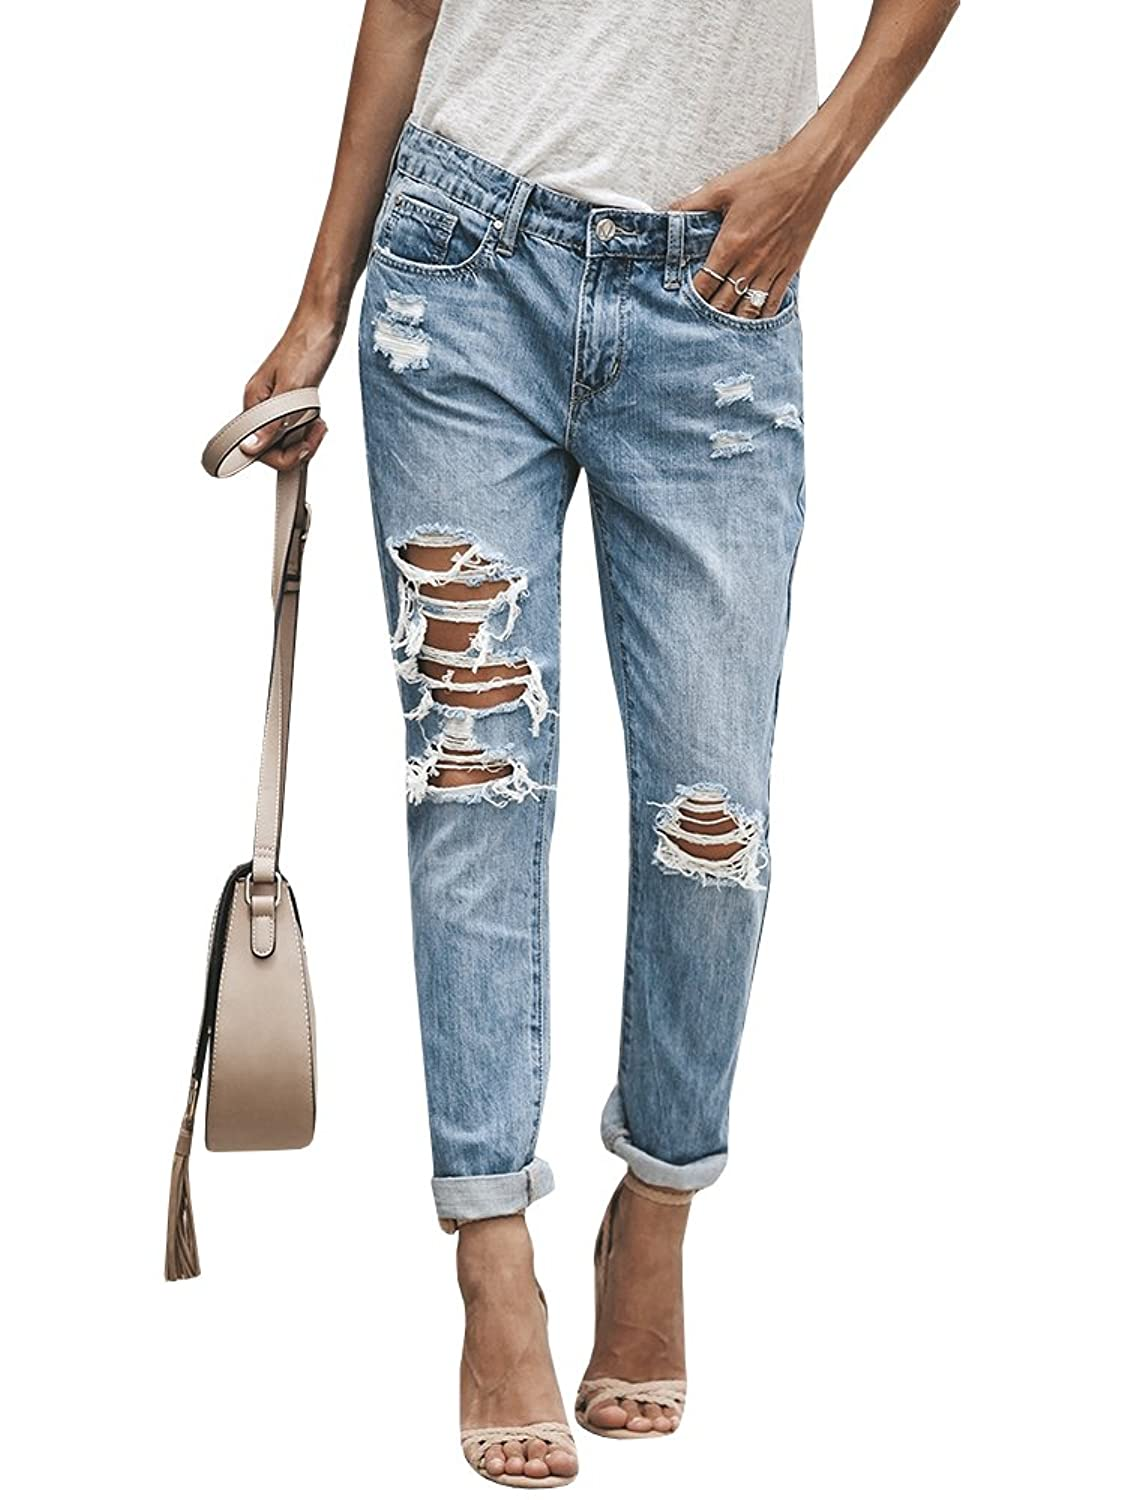 69ef9487c7 【Features】Women\'s juniors jeans. Ripped design is still popular and  fashinable nowadays. Roll up stretch style makes you more comfortable when  wearing.